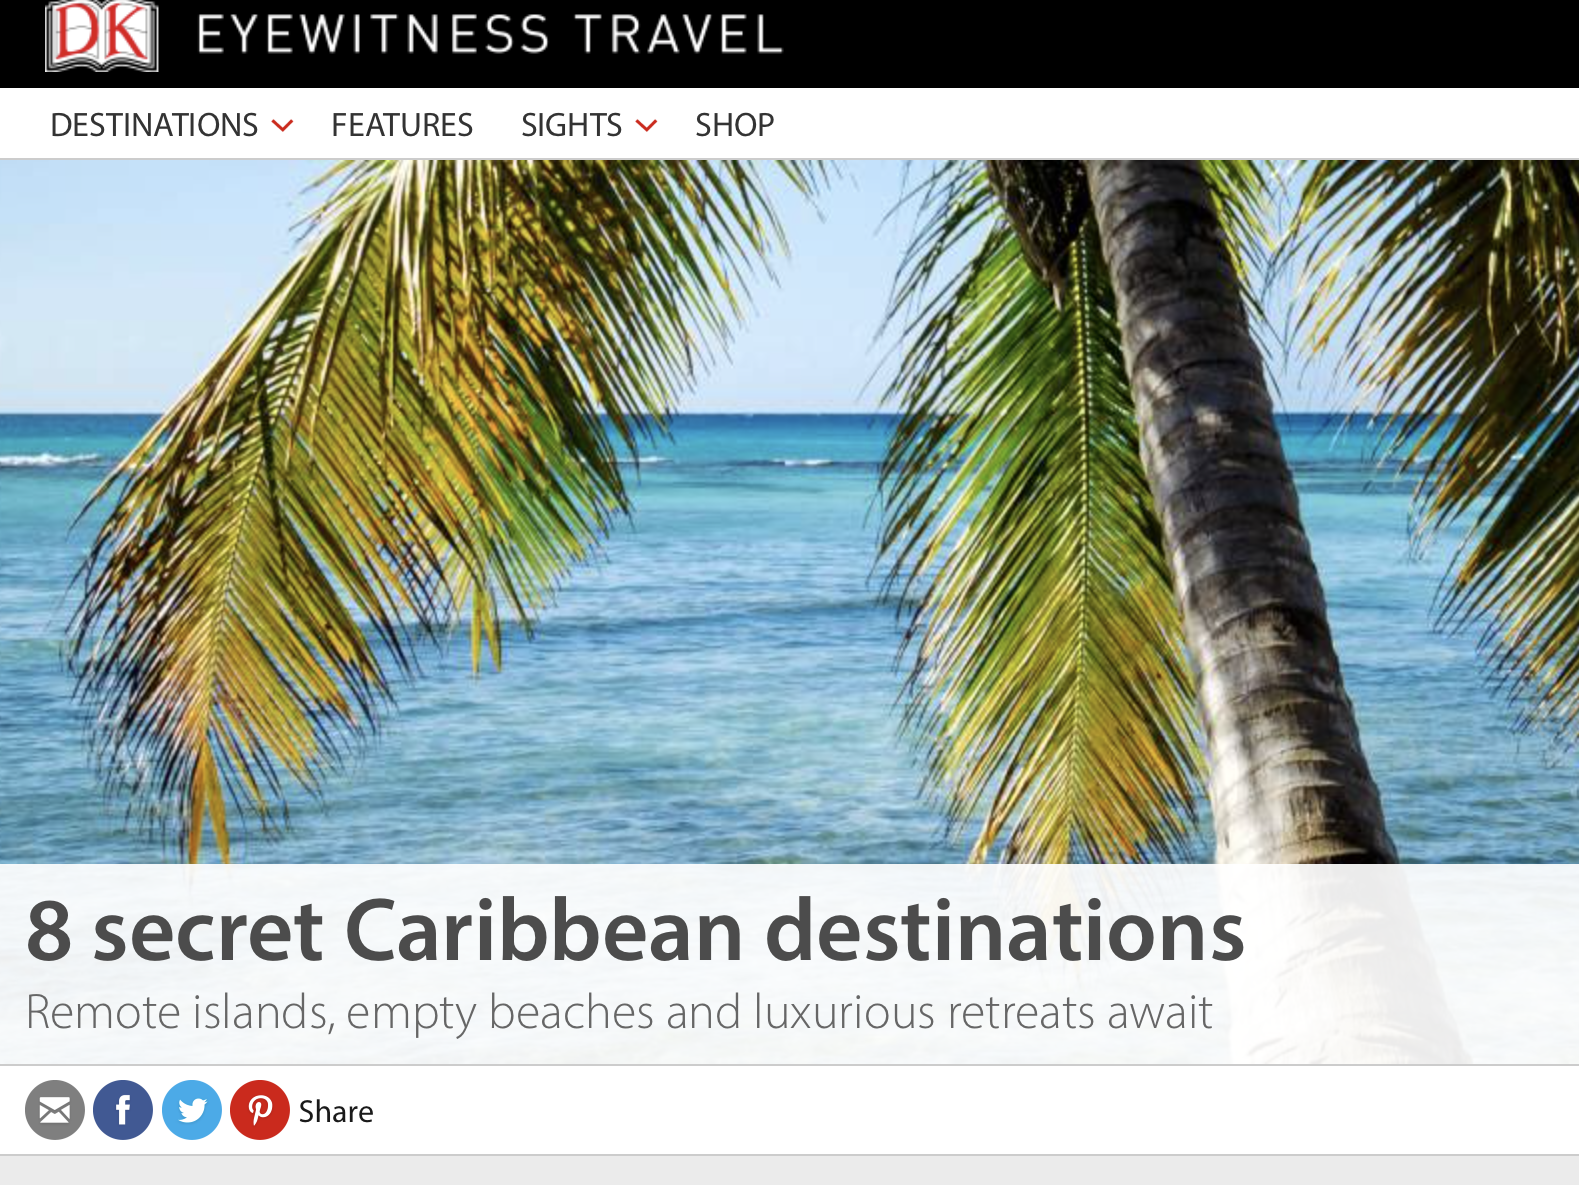 8 secret Caribbean destinations